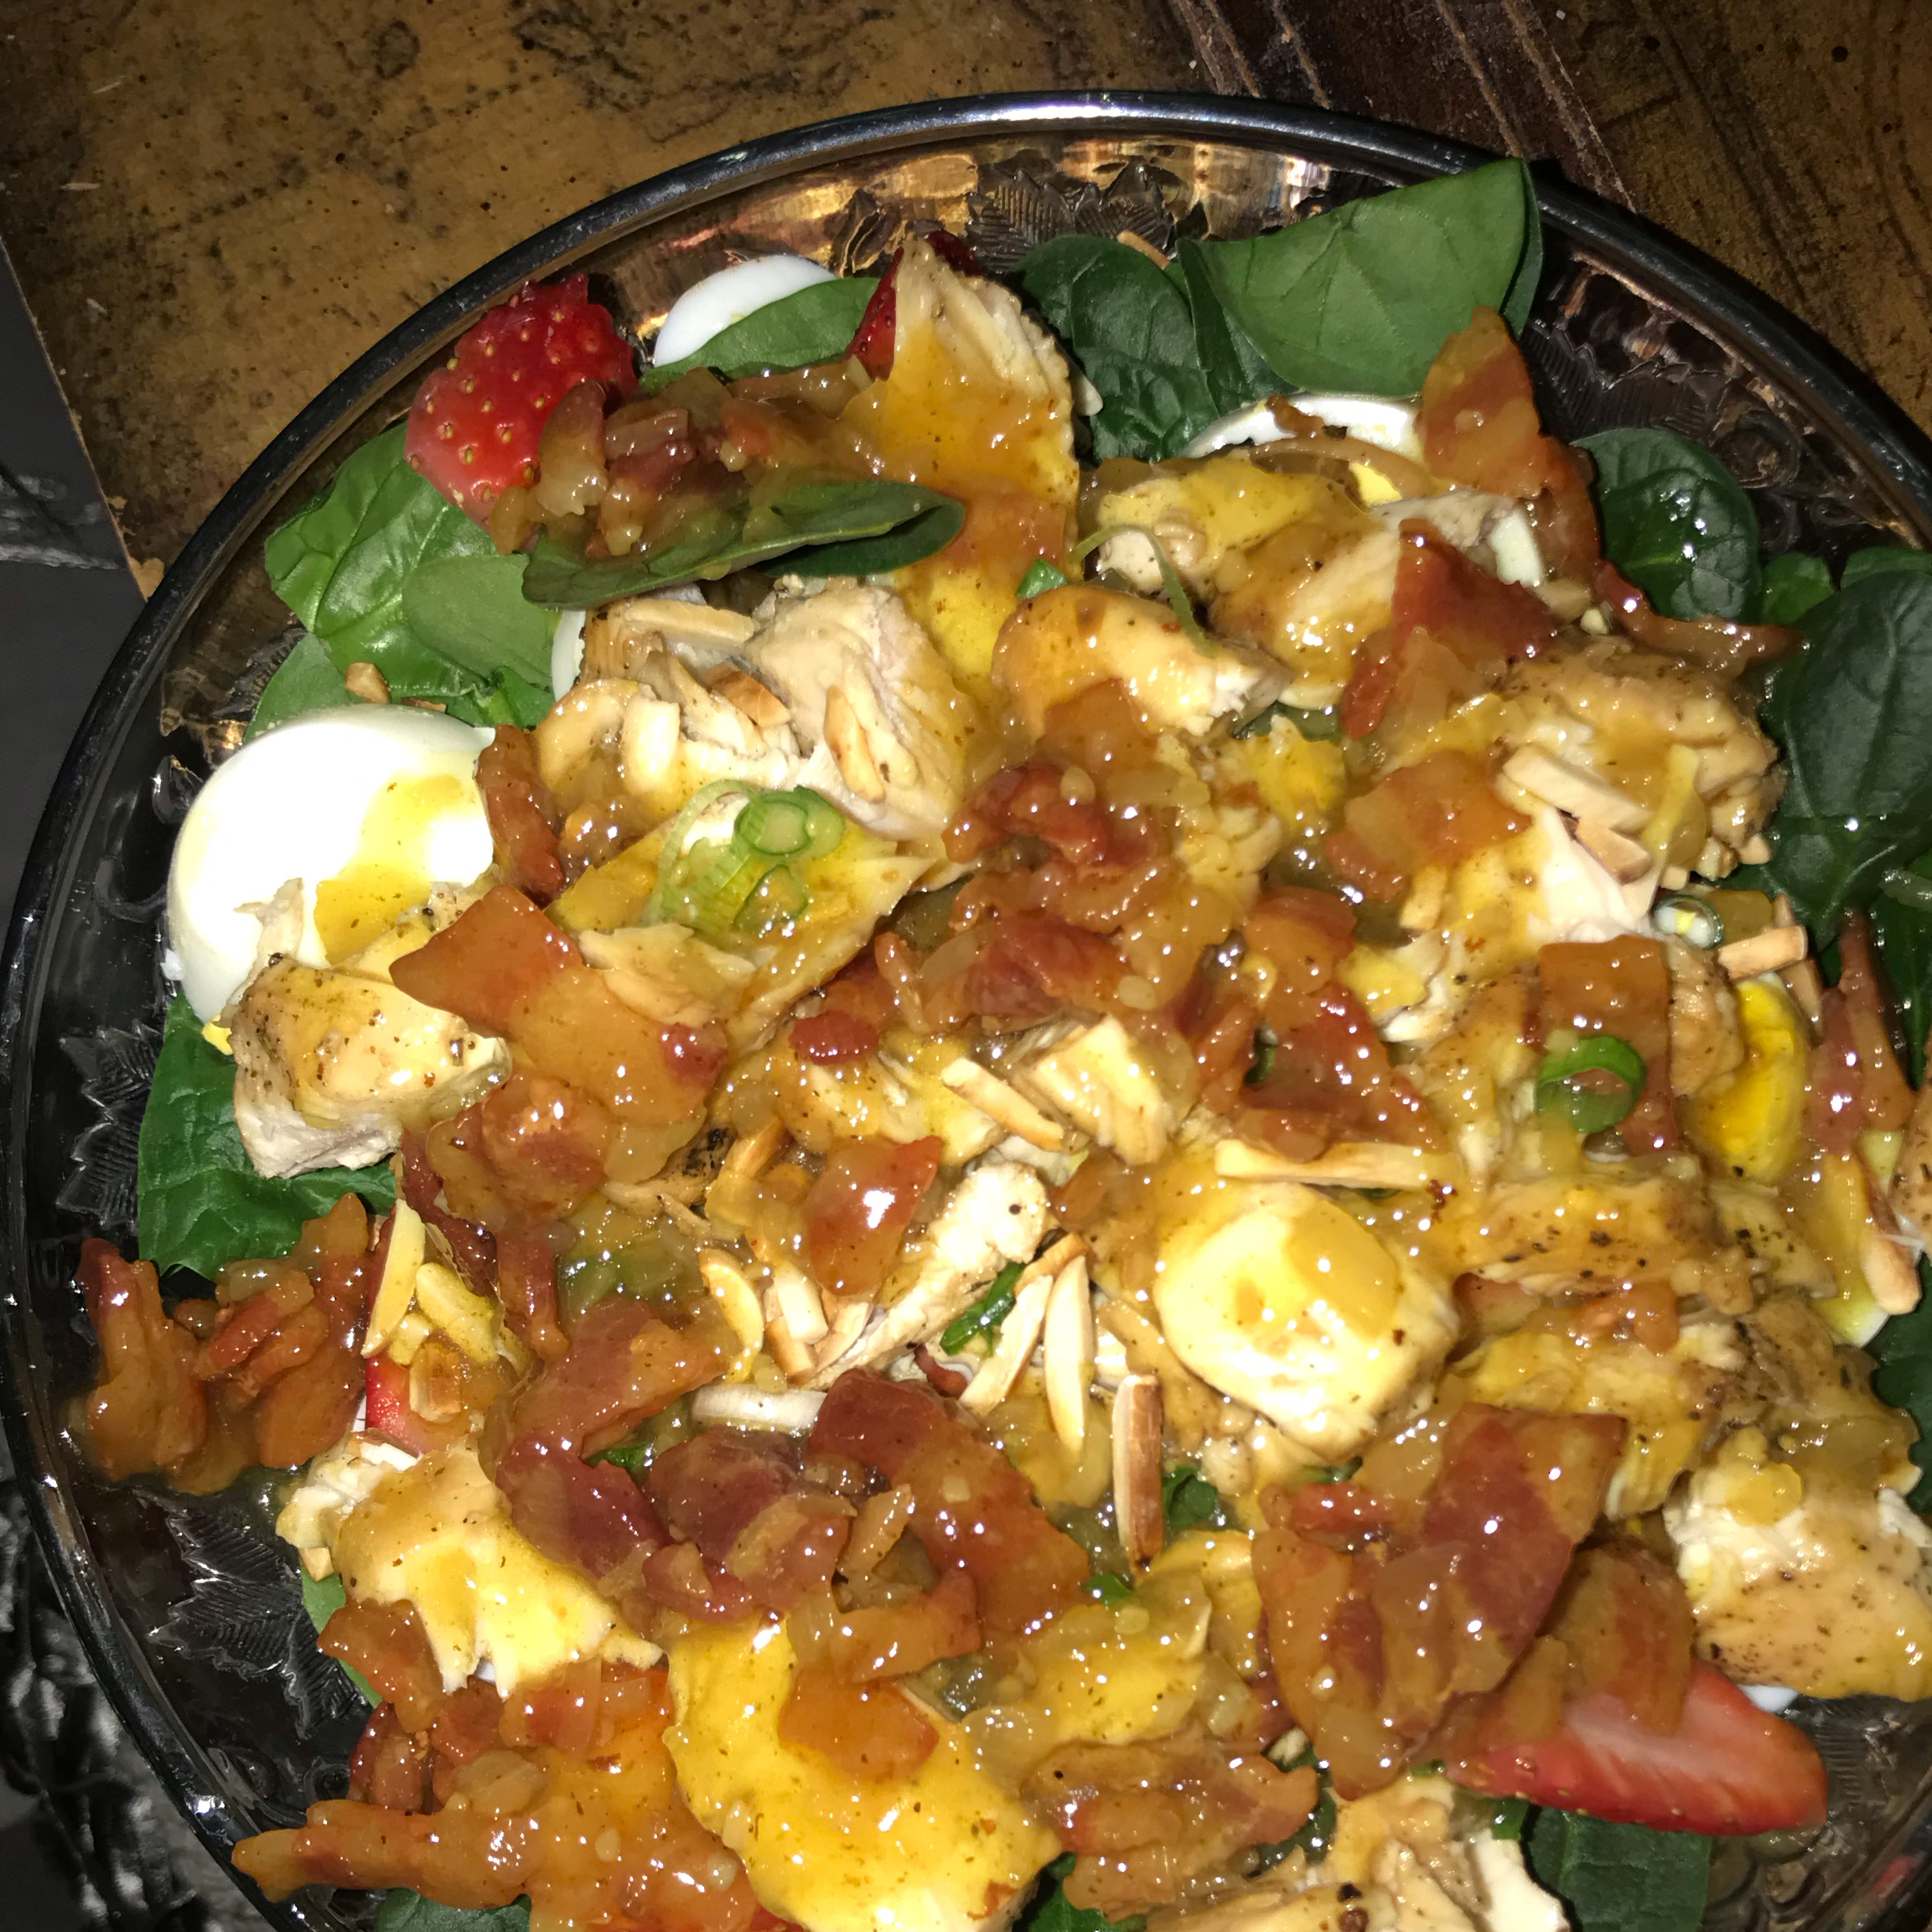 Spinach Salad with Hot Bacon Dressing